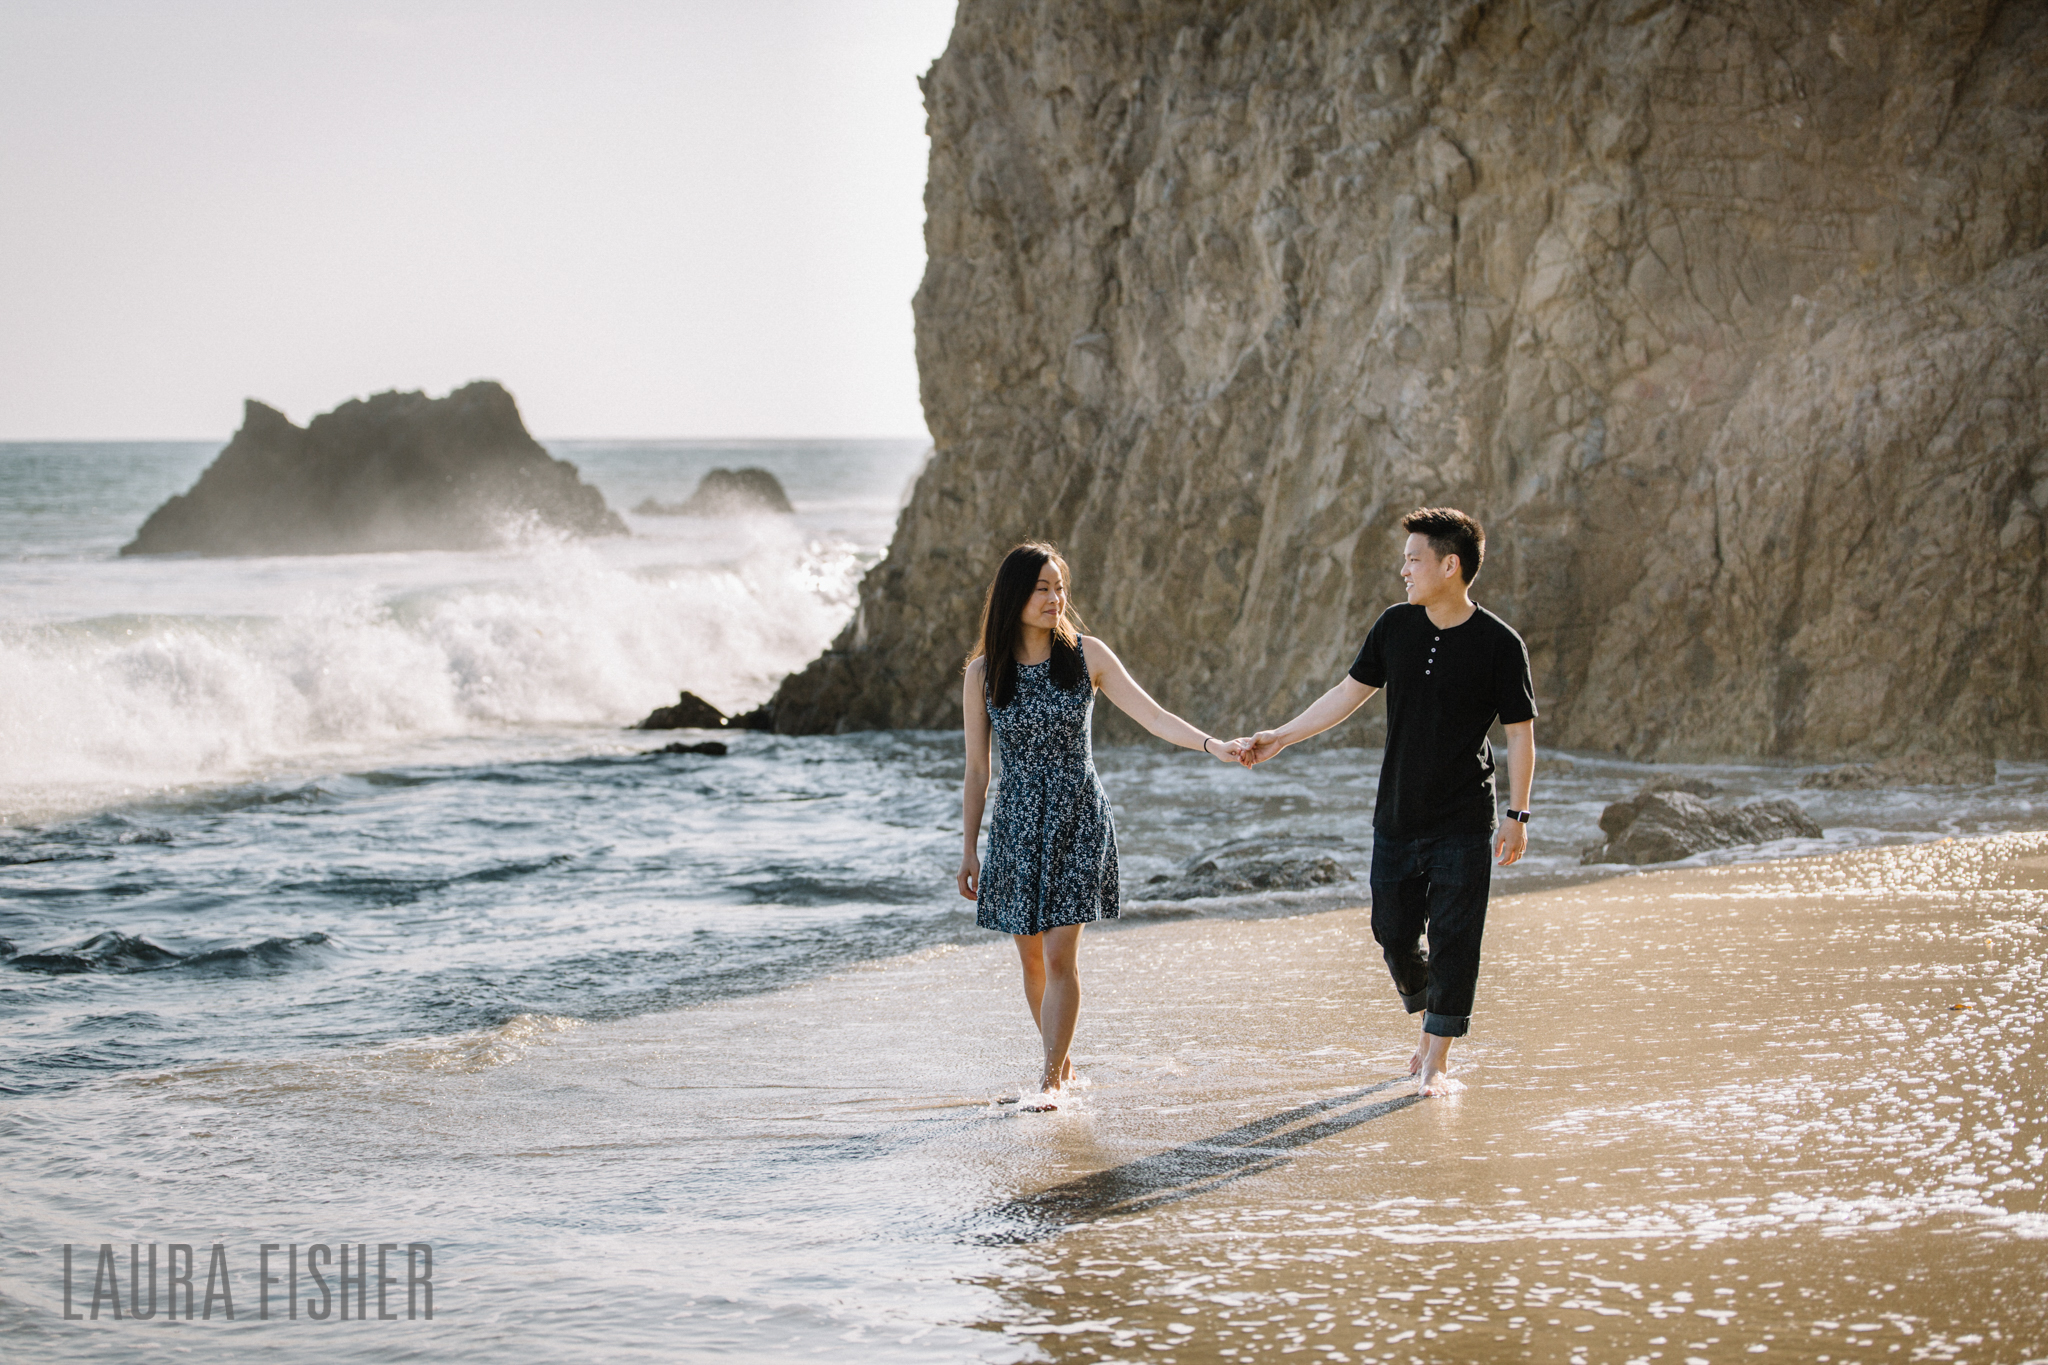 malibu-california-wedding-el-matador-beach-laura-fisher-photography-0010.jpg